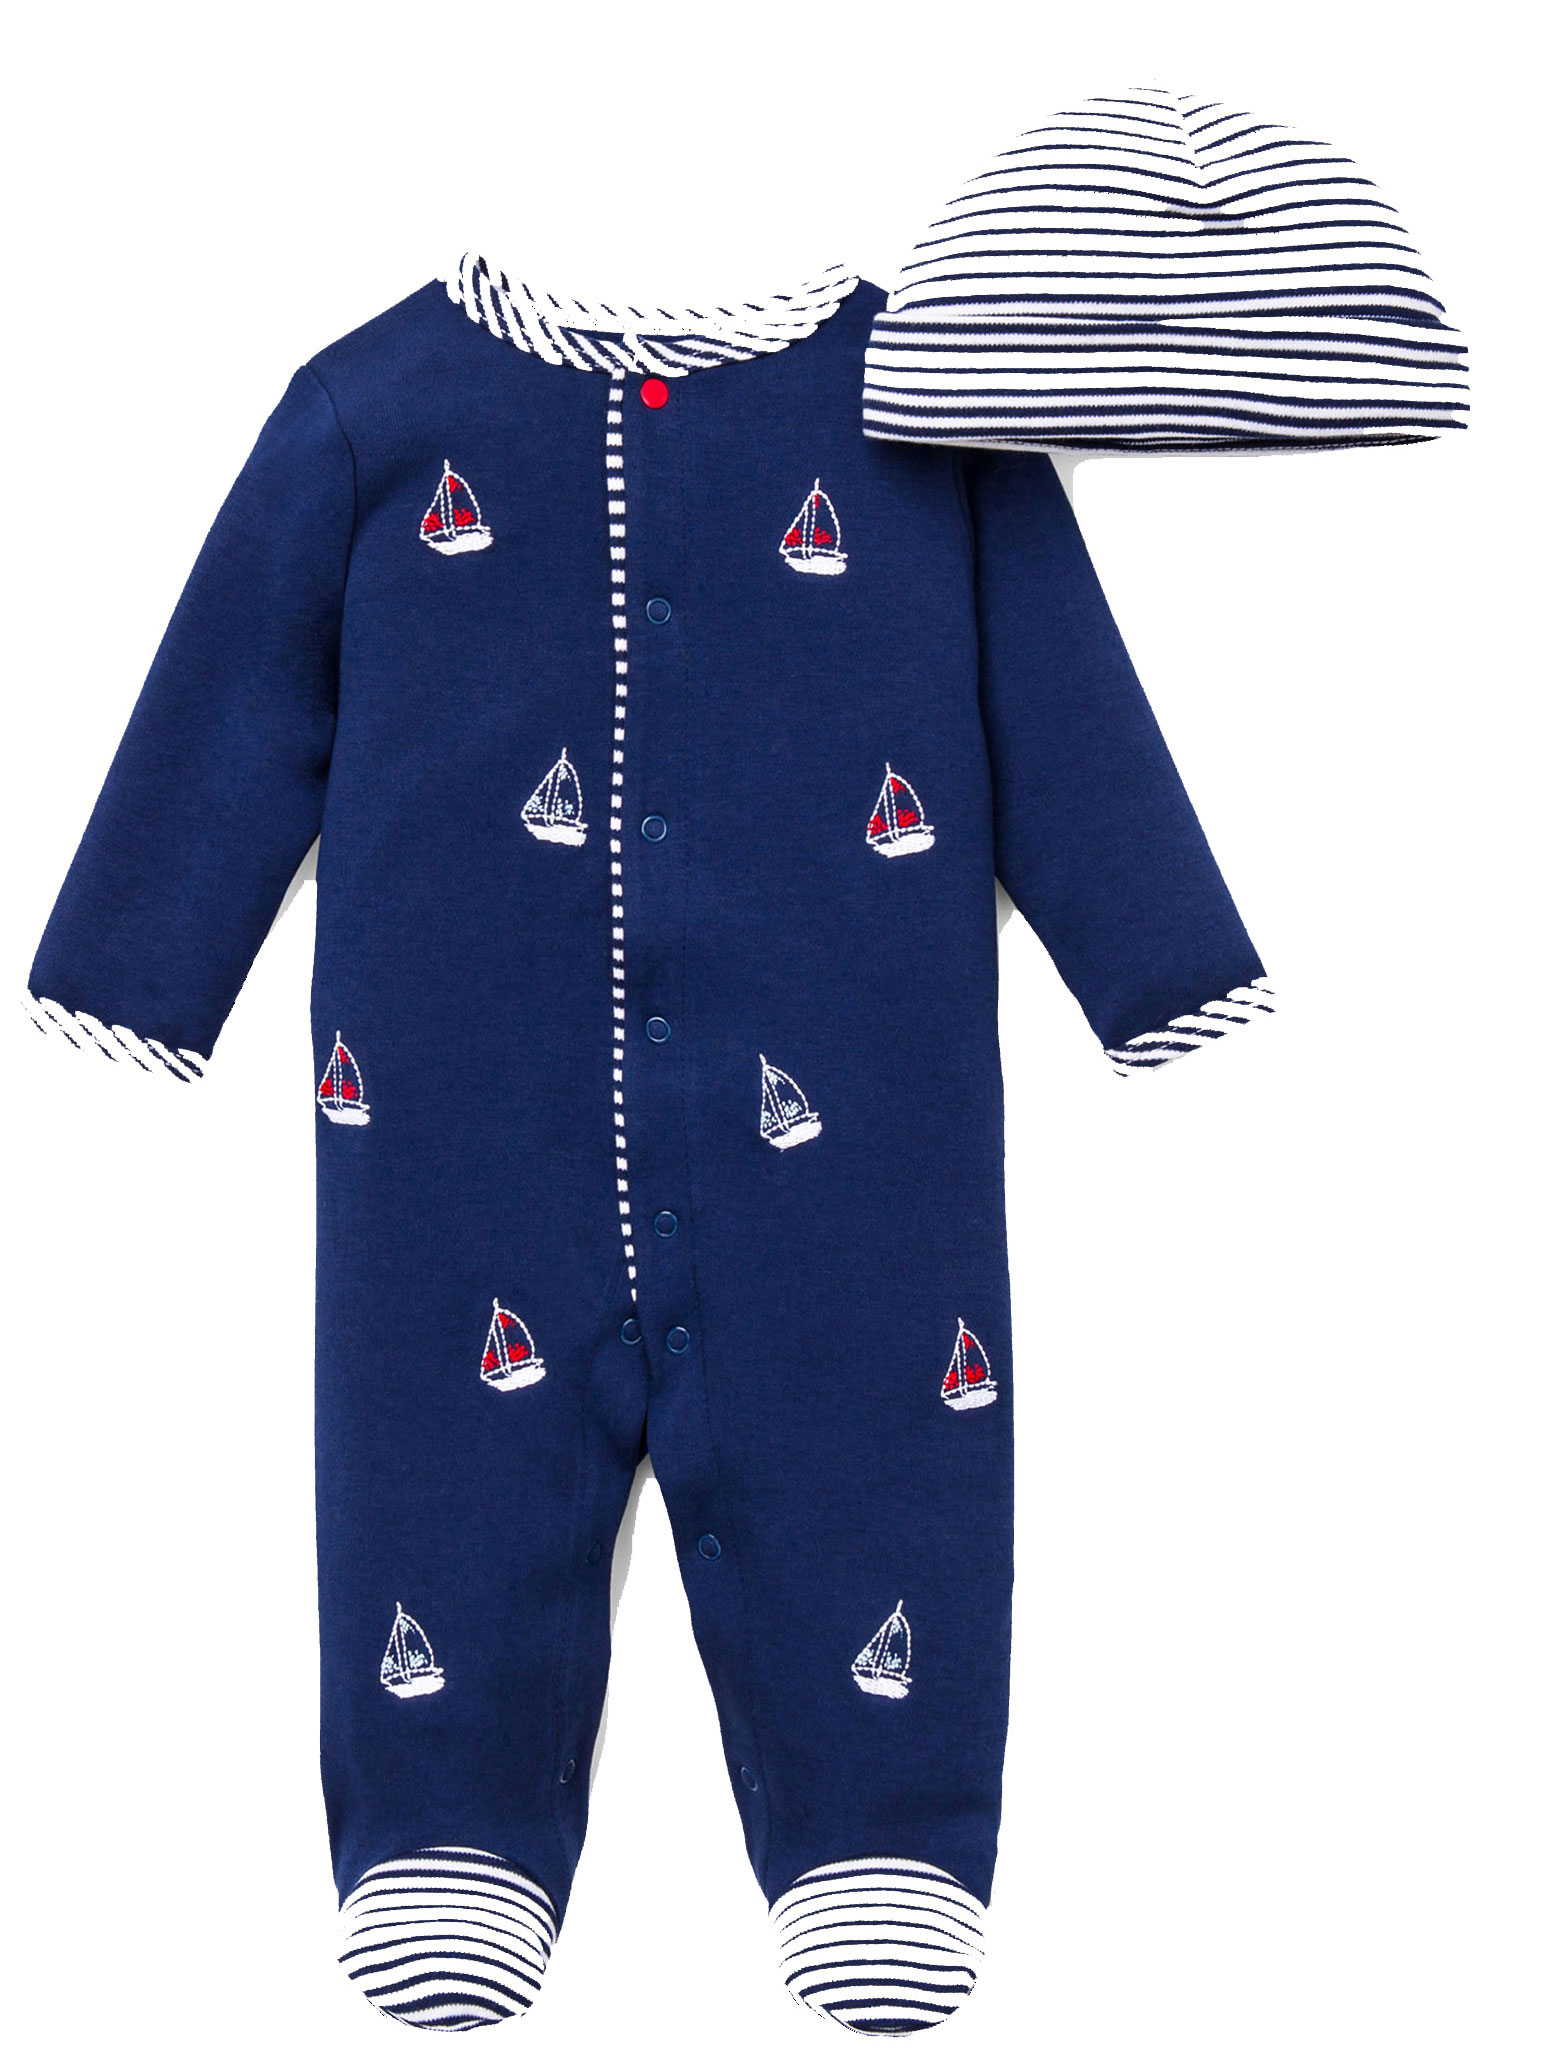 Baby Boys Sailboat Nautical Snap Front Footie Pajamas with Hat For Baby Boys Sleep N Play One Piece Romper Coverall Cotton Infant Footed Sleeper; Pijamas Para Bebes - Red, White, Navy Blue - 3 Month